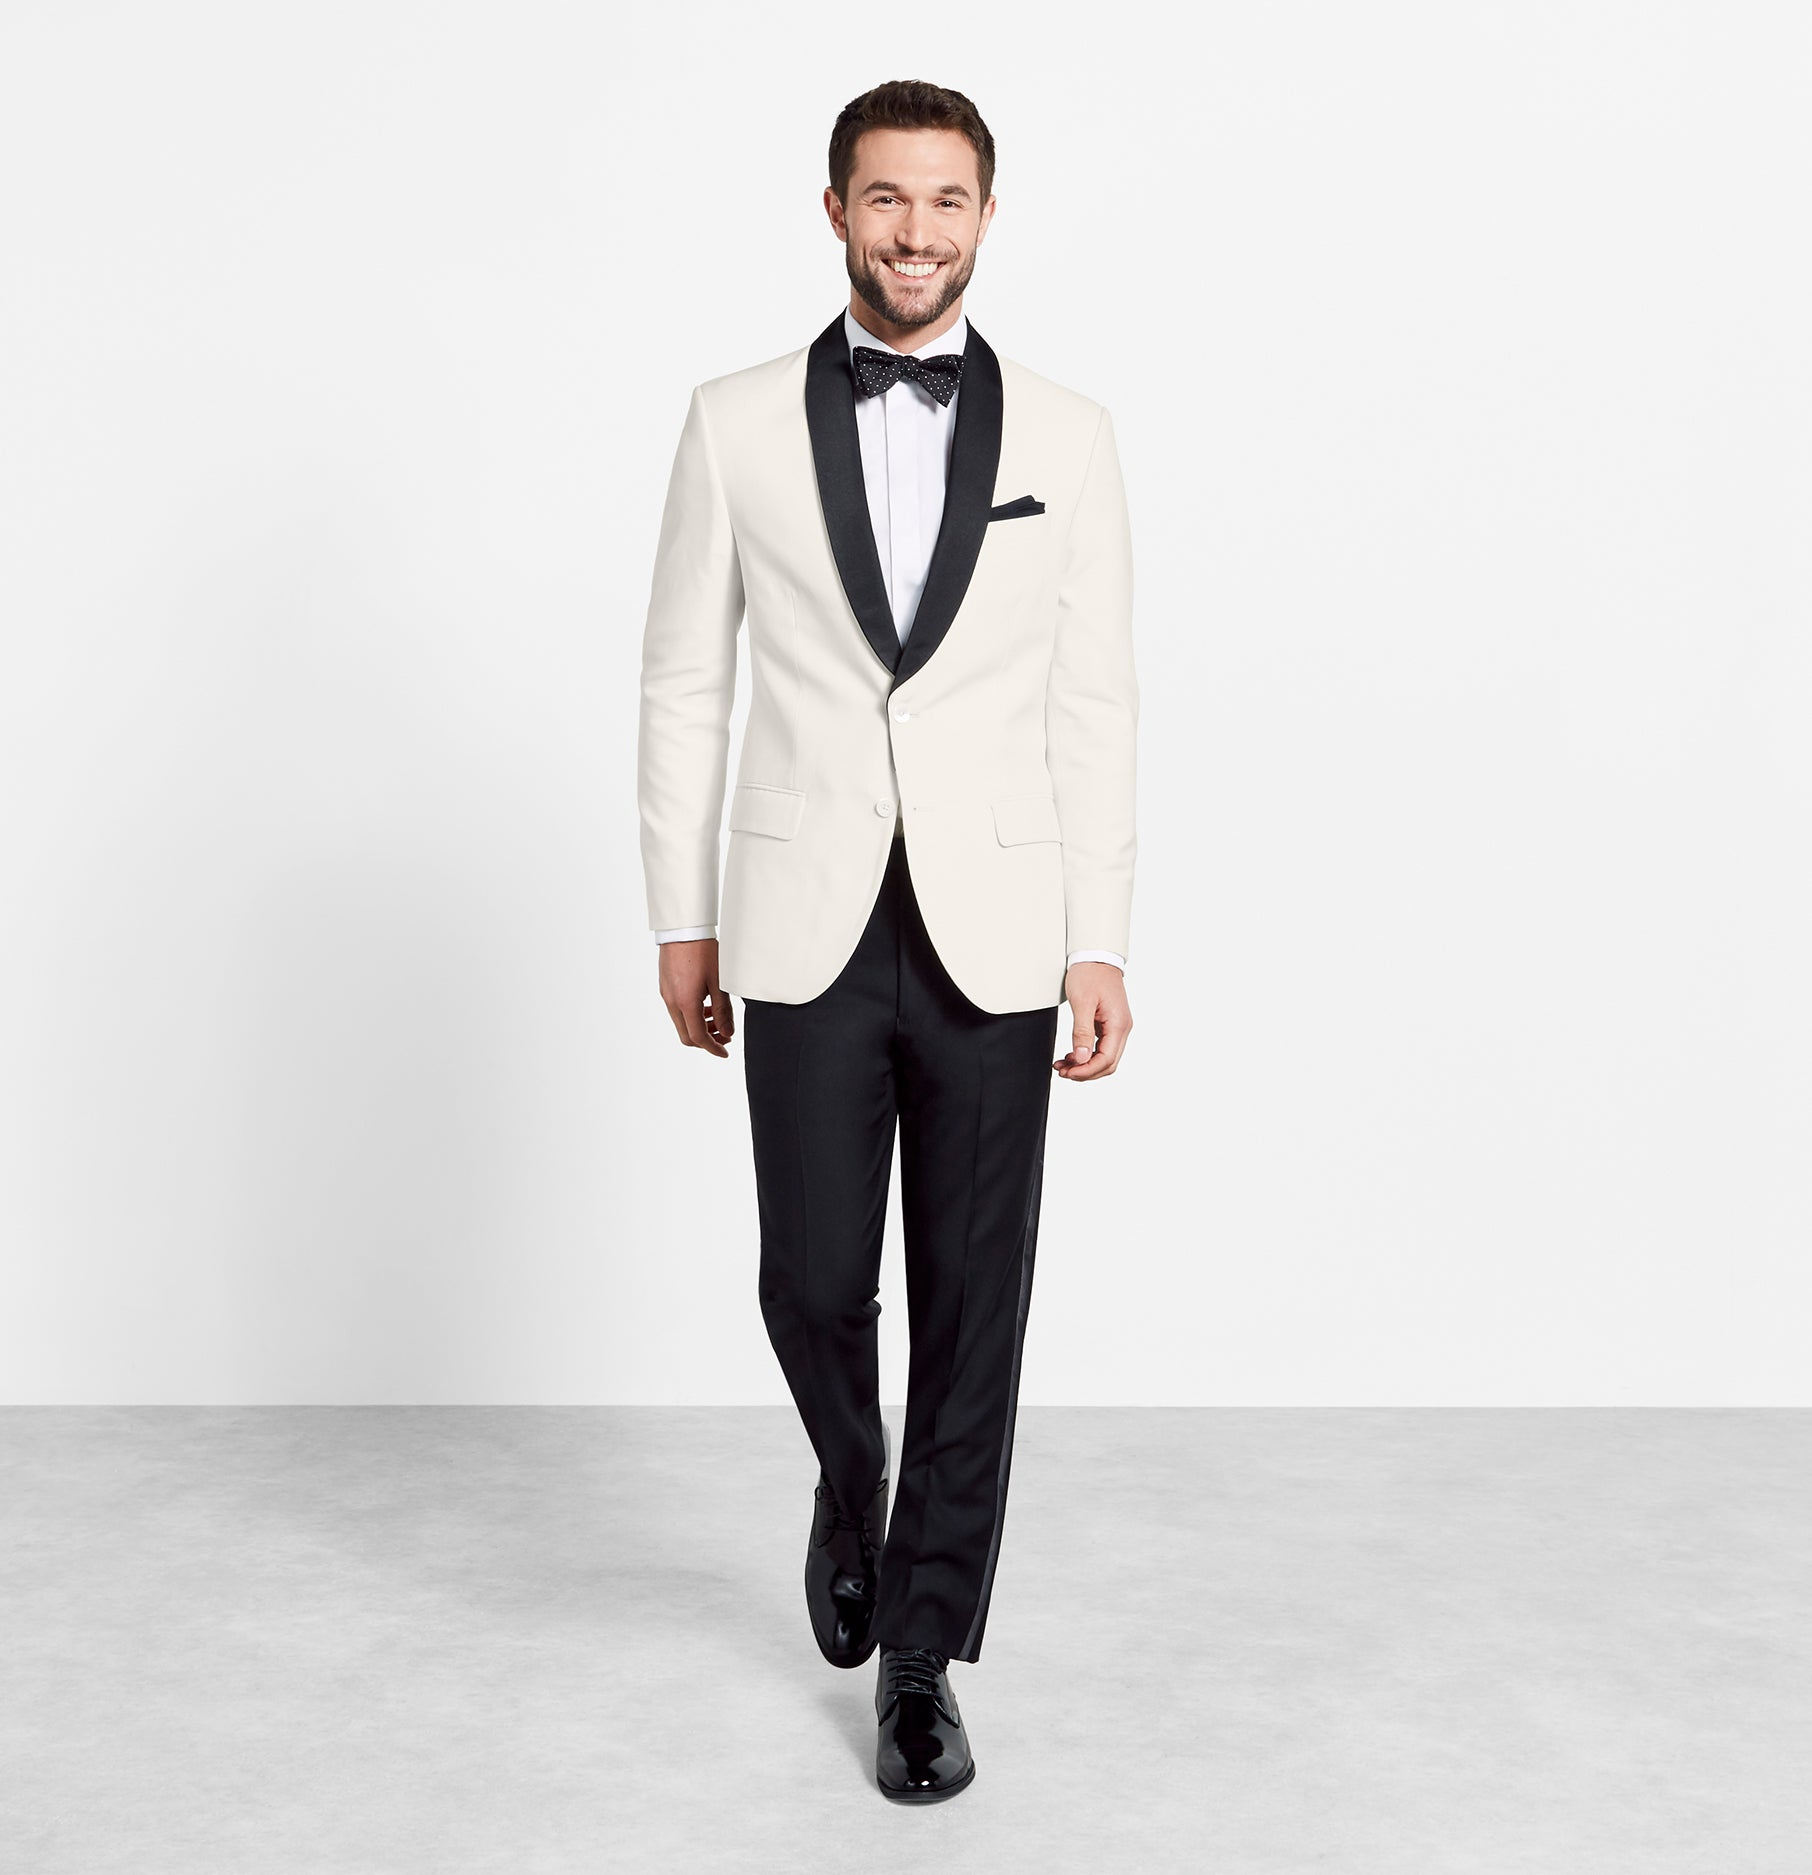 Contrast Shawl Jacket Tuxedo The Black Tux